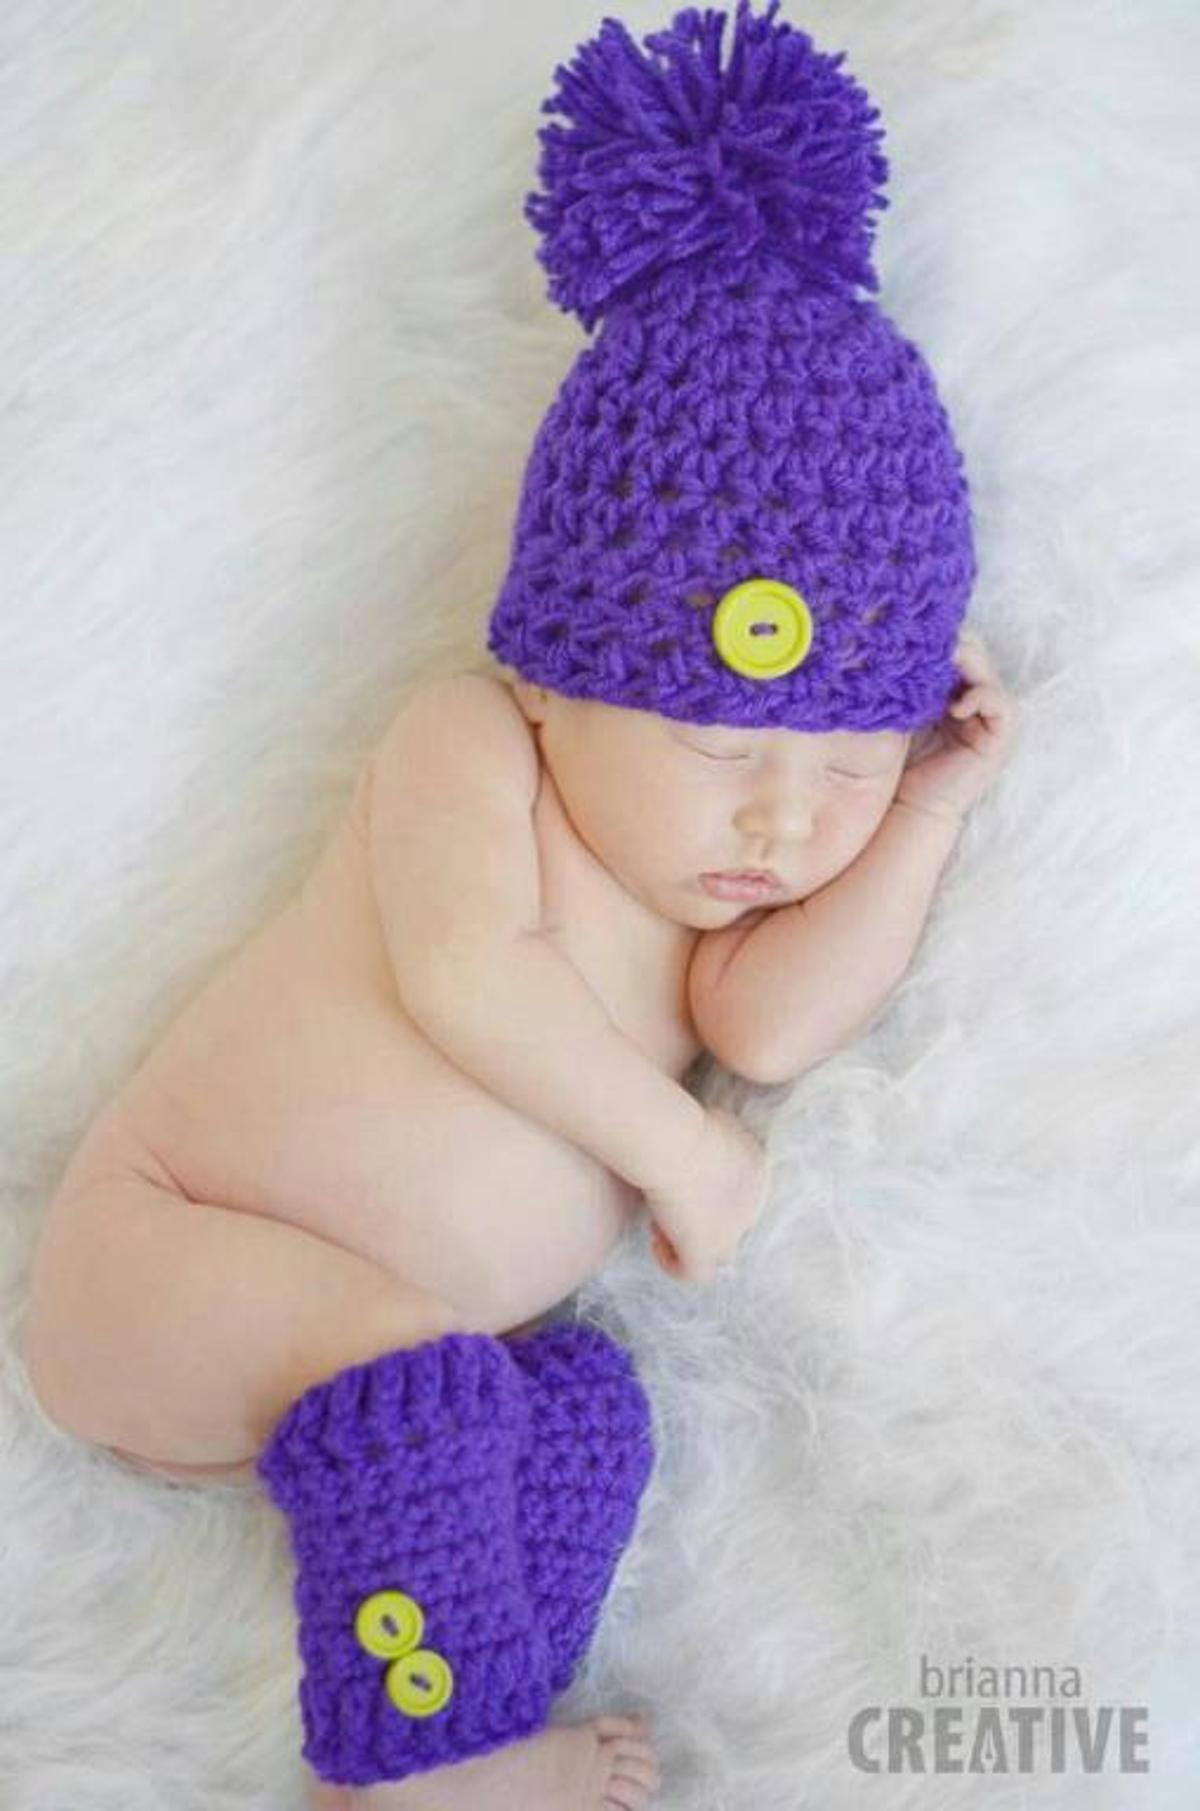 Luxury 12 Newborn Crochet Hat Patterns to Download for Free Free Crochet Infant Hat Patterns Of Luxury Baby Hat Crochet Pattern Modern Homemakers Free Crochet Infant Hat Patterns